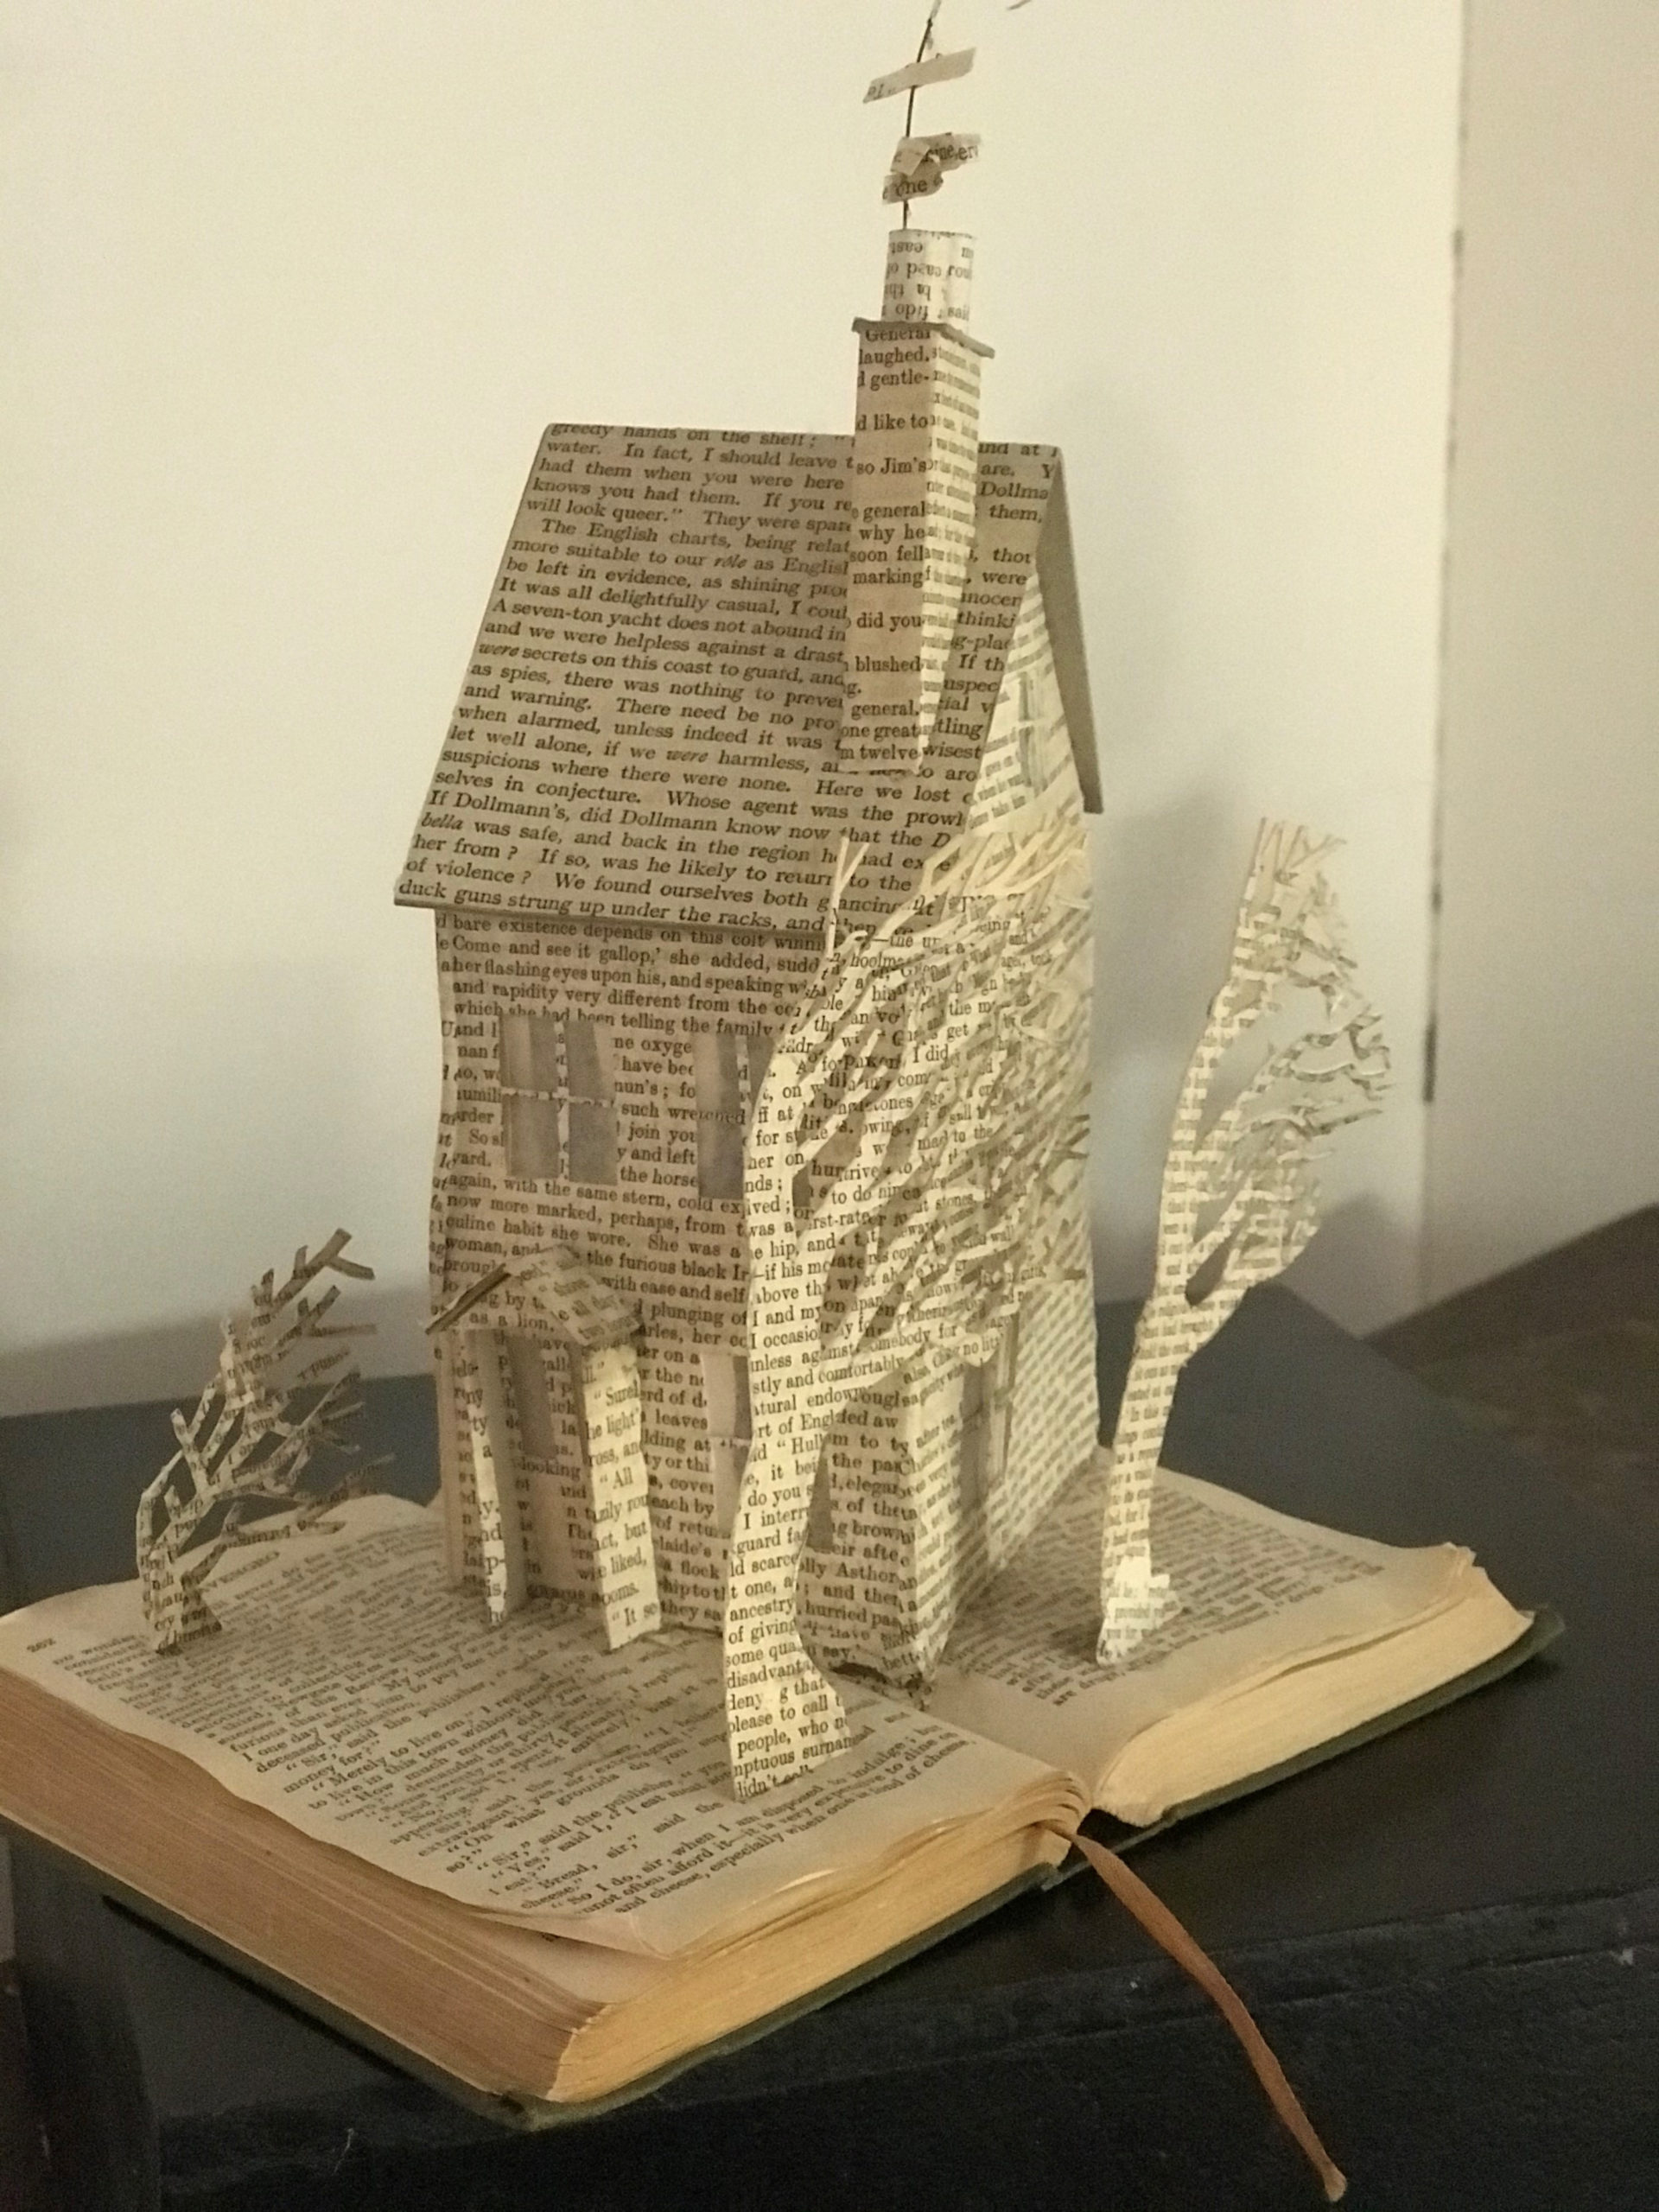 Modern colour photo of an open printed book with a 3D paper house and trees also made from printed book sheets